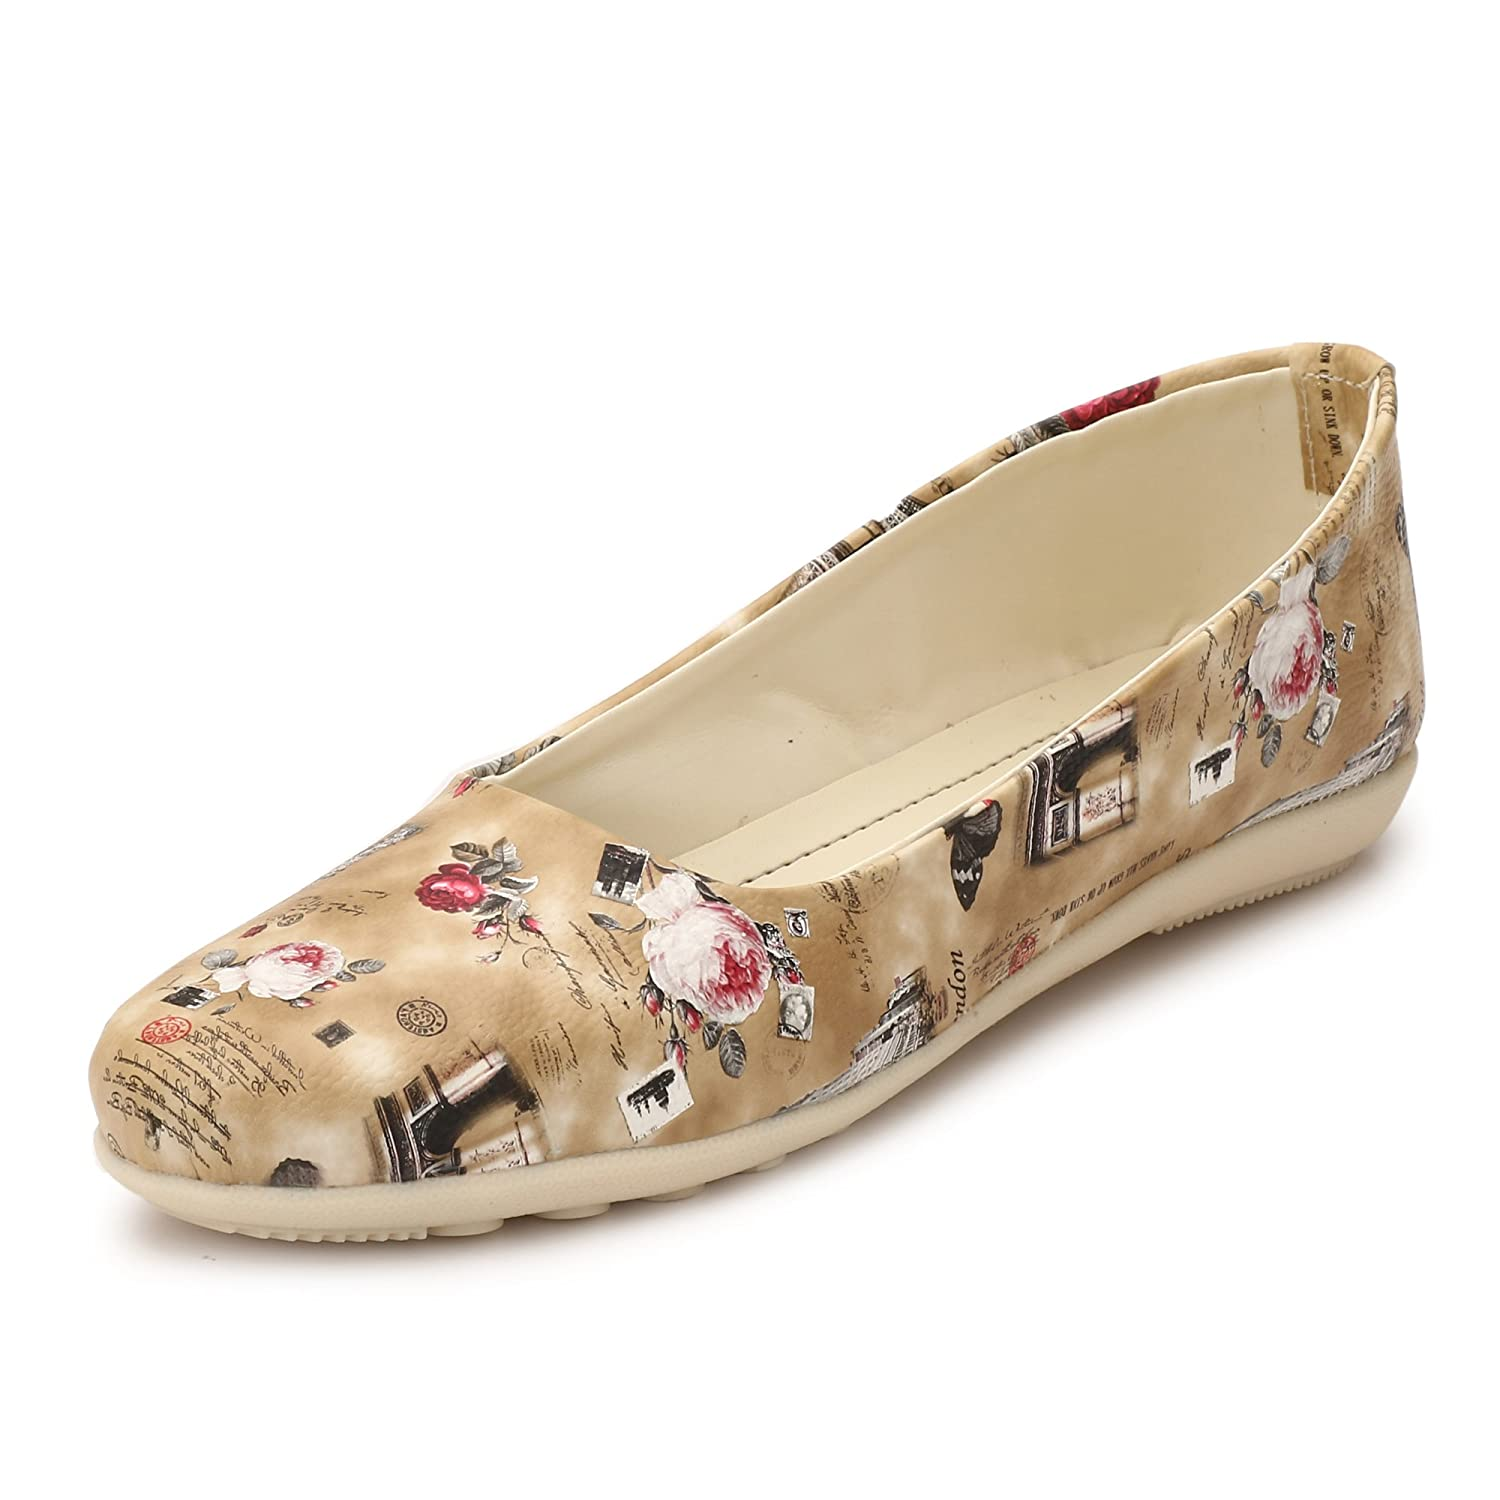 62d67d665c65 AlexaStar Women Flat Belly Shoes Comfortable Slip On Pointed Toe Girls  Ballet Flats Bellies   Ballerina  Buy Online at Low Prices in India -  Amazon.in